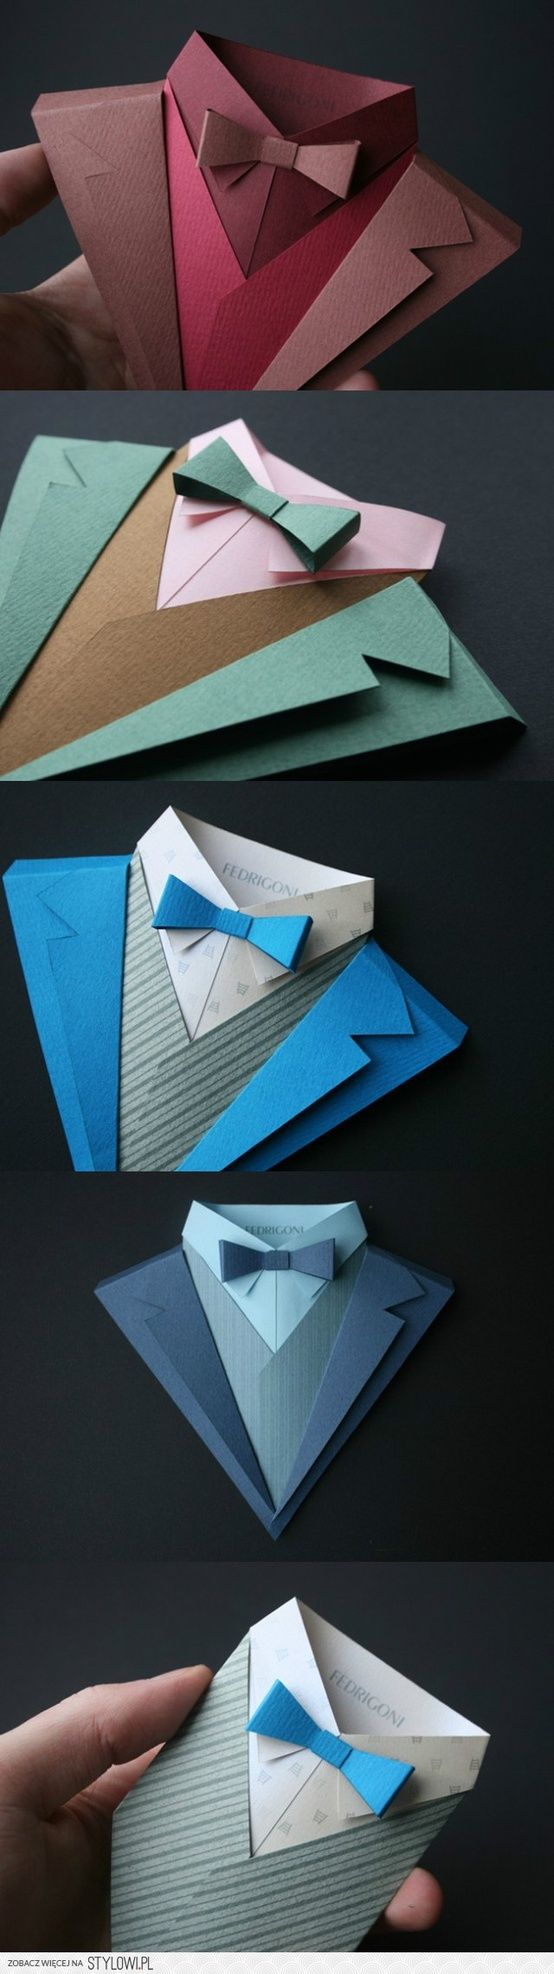 Create your own paper tuxedo   Pinterest   Cards, Wedding card and ...